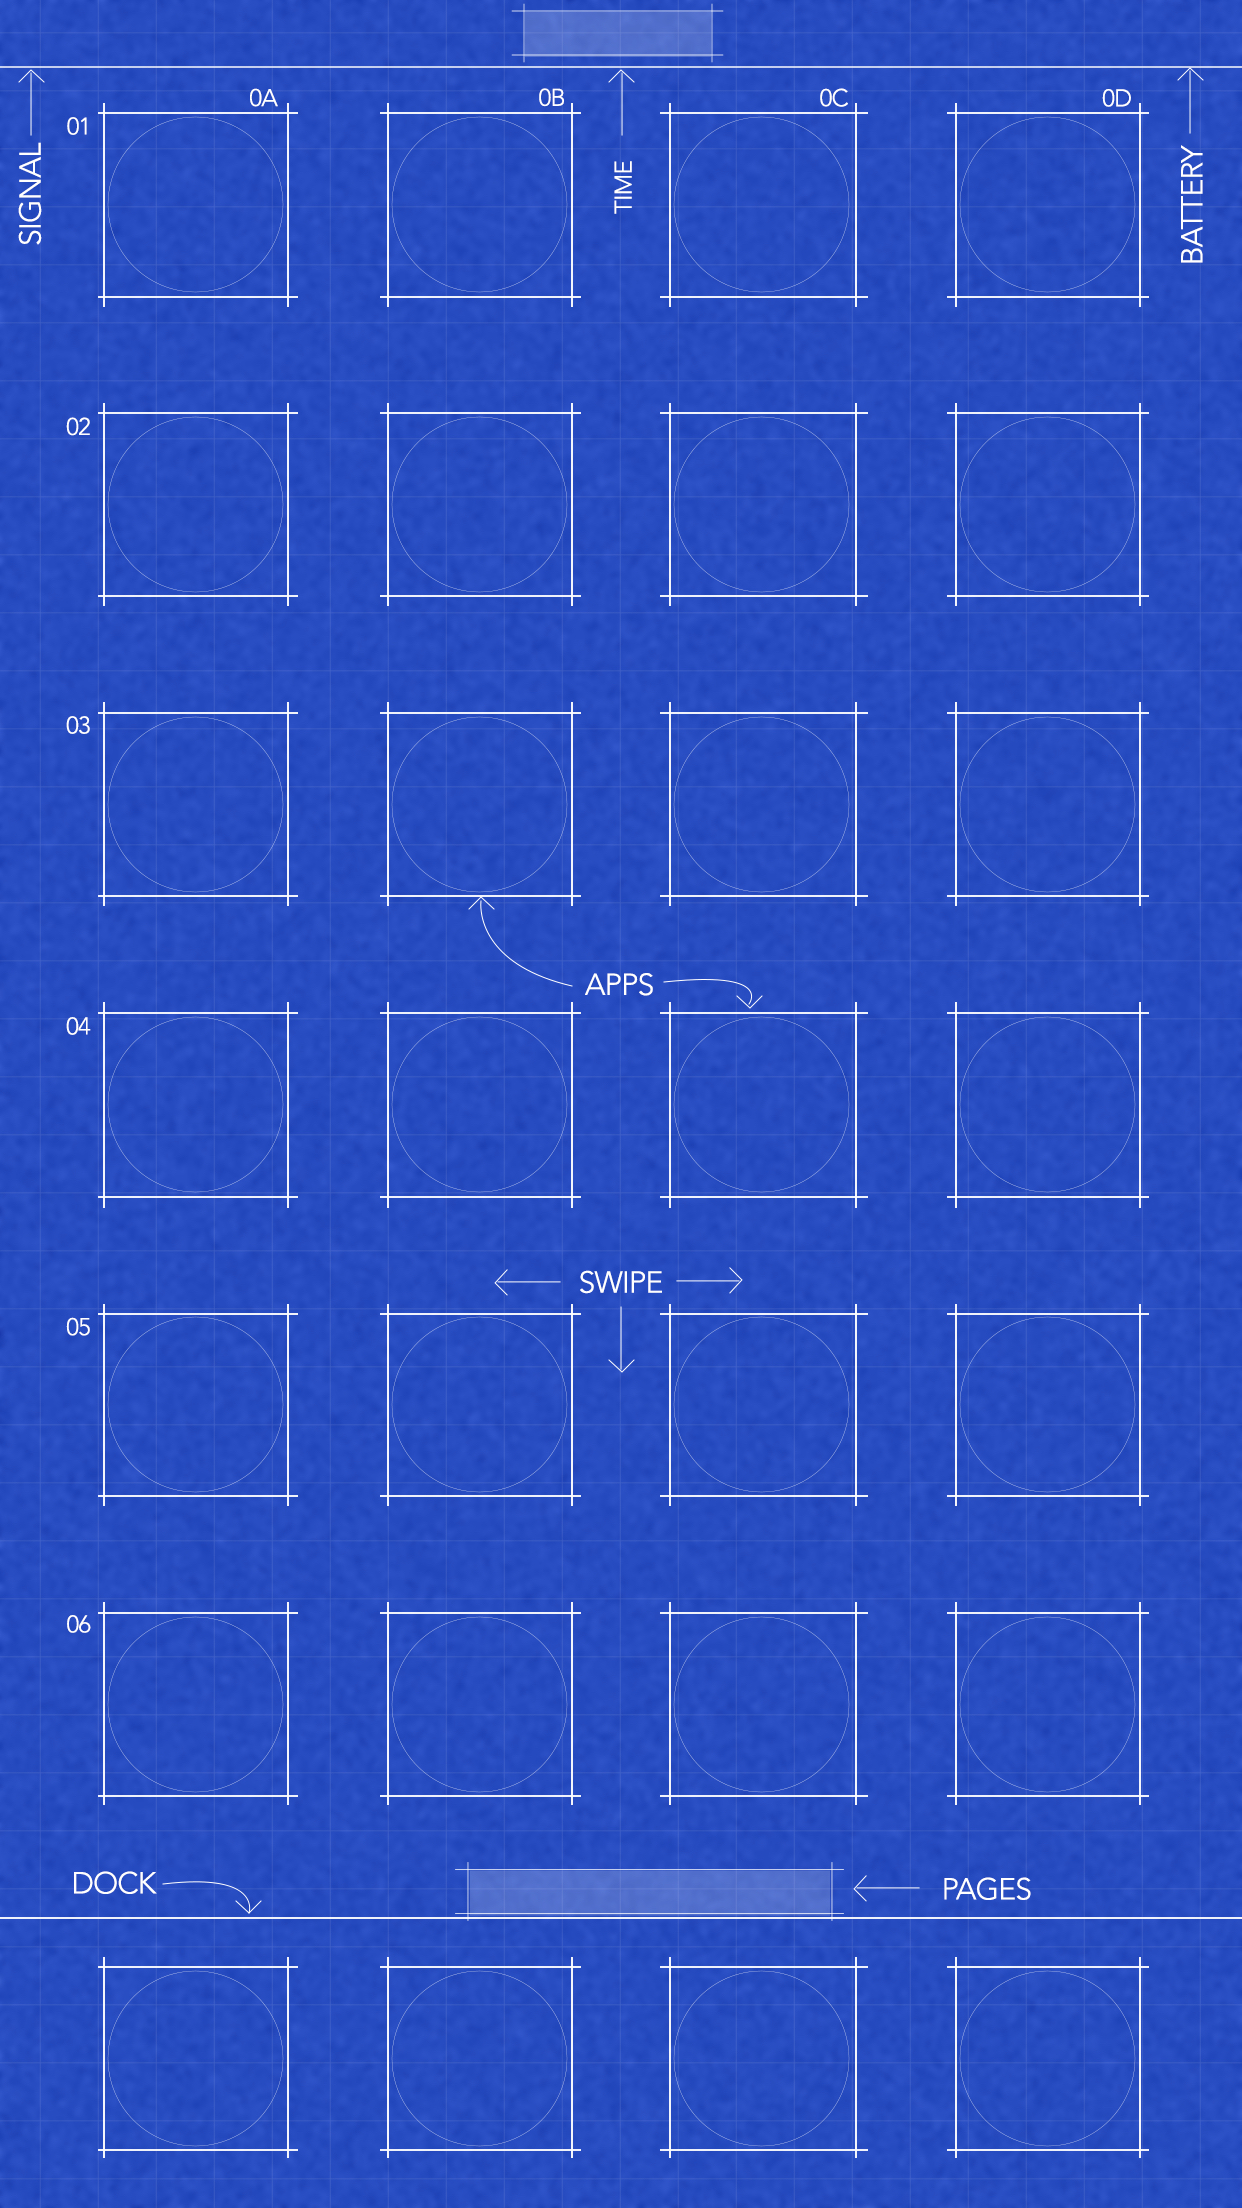 download 6s78 plus blueprint wallpaper